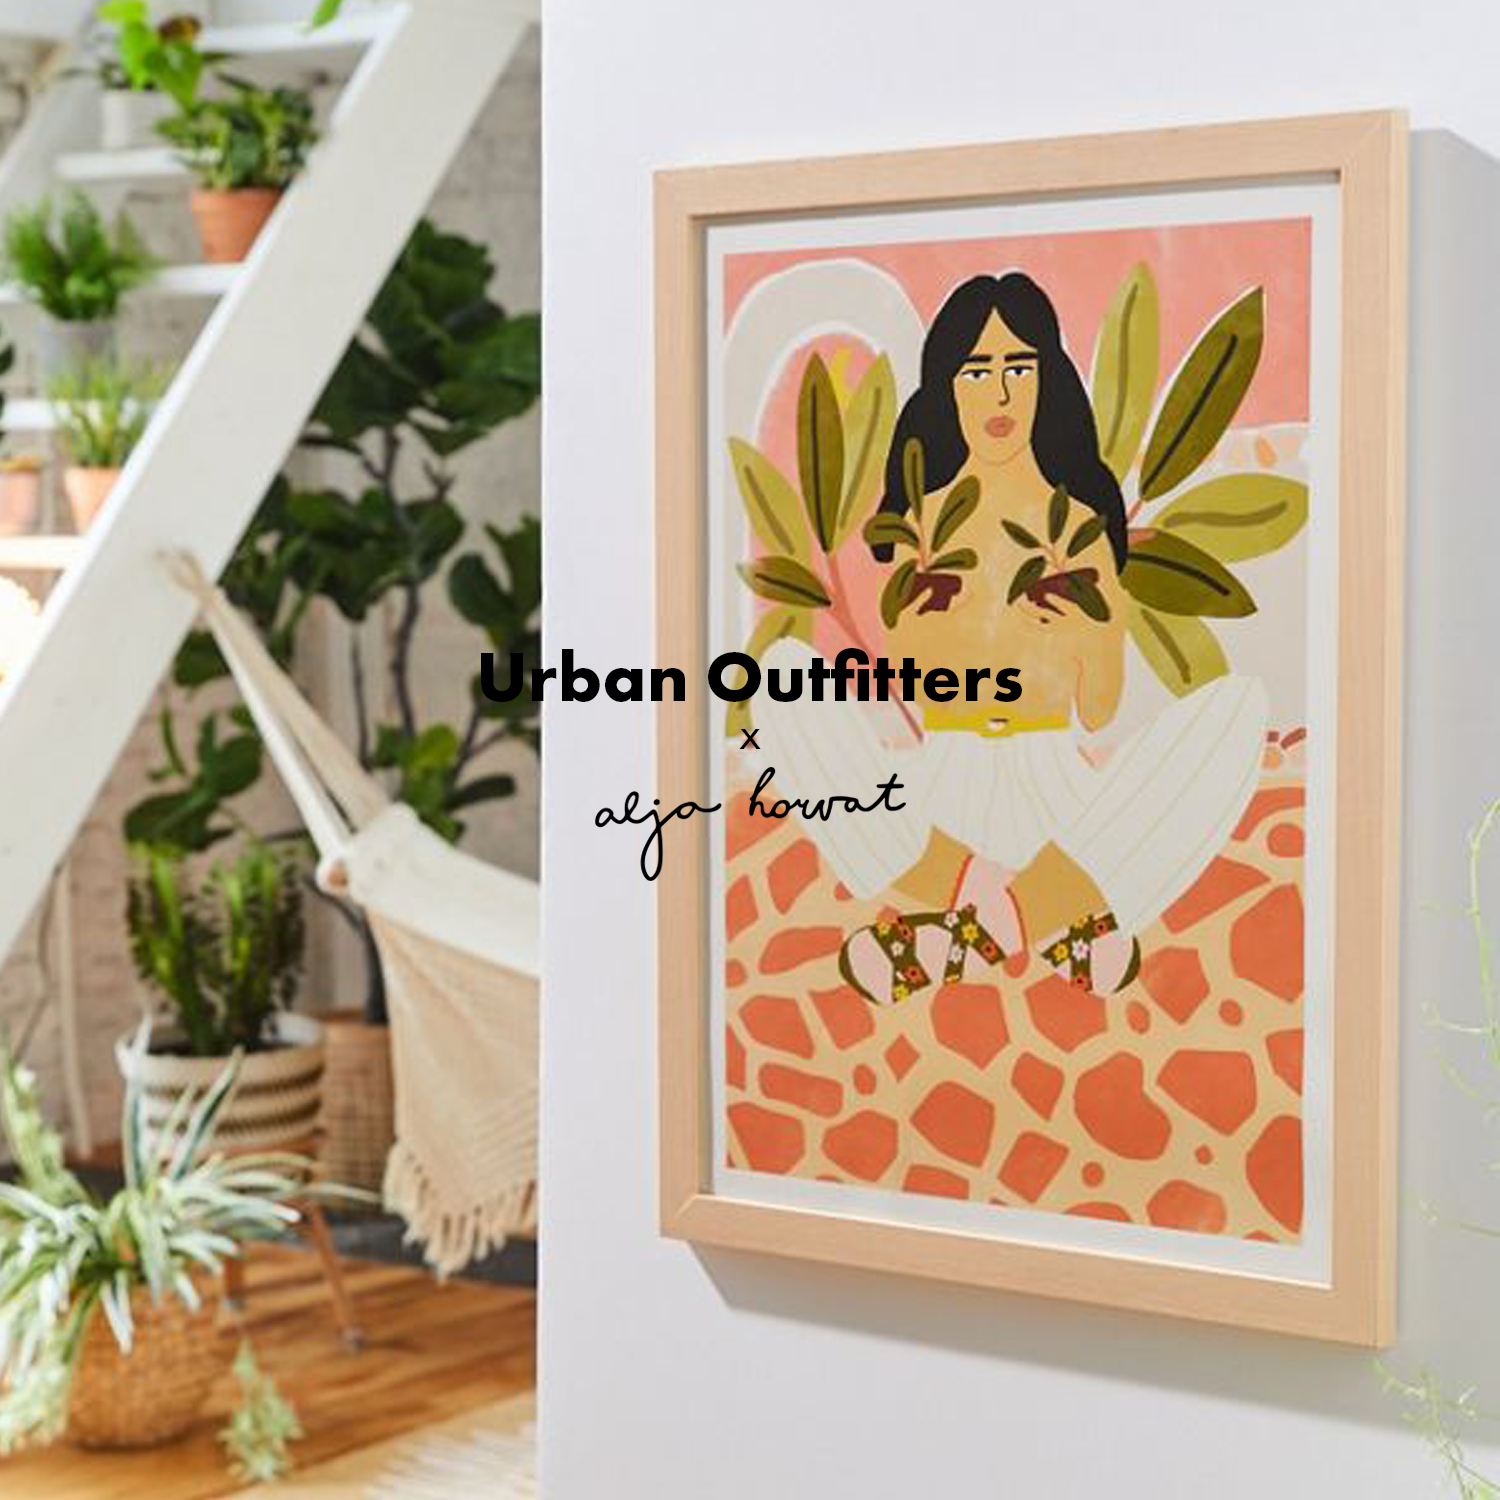 Urban Outfitters x Alja Horvat